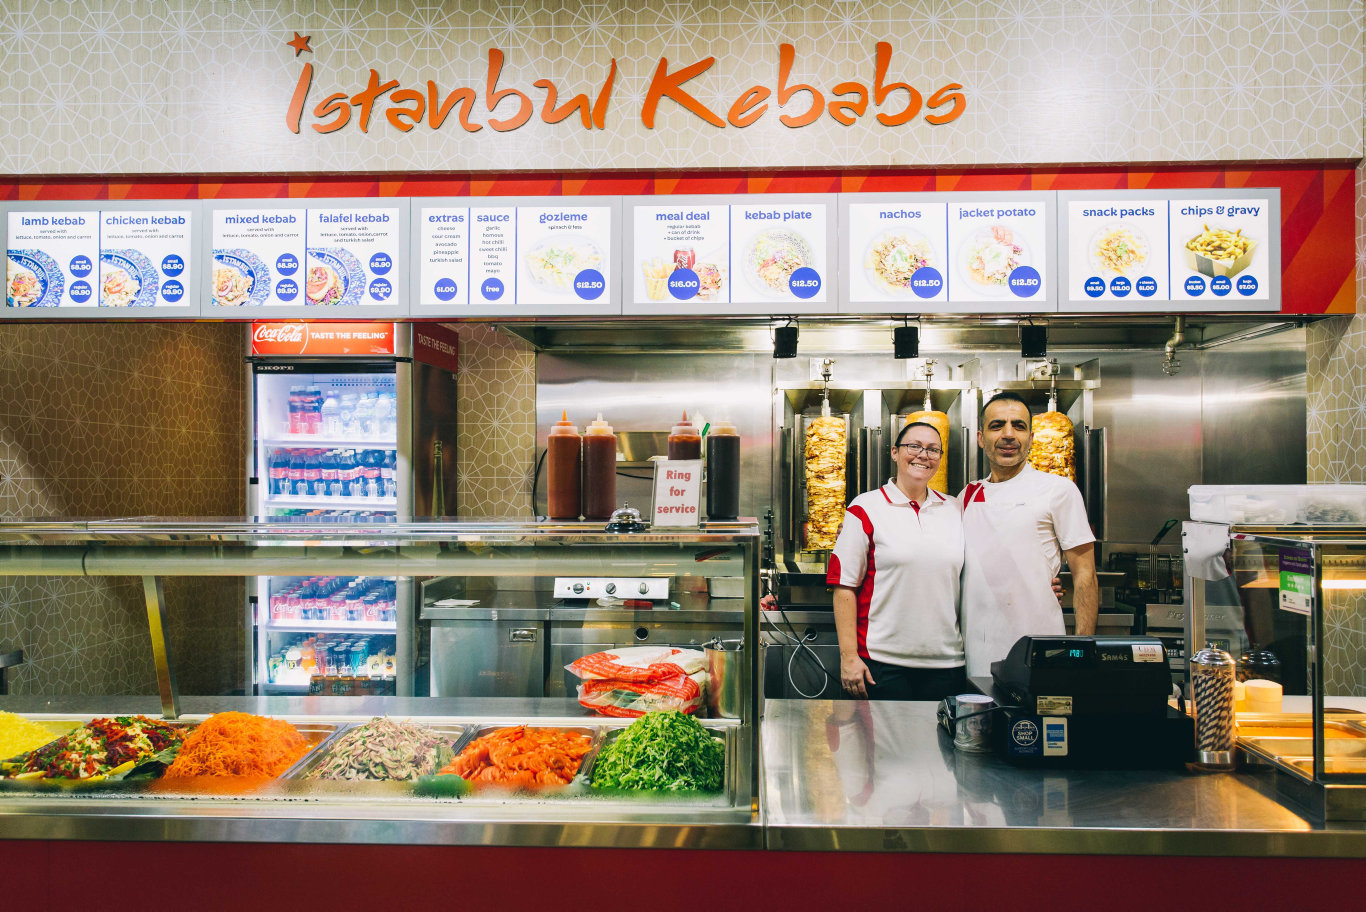 Instanbul Kebabs with it's new look!